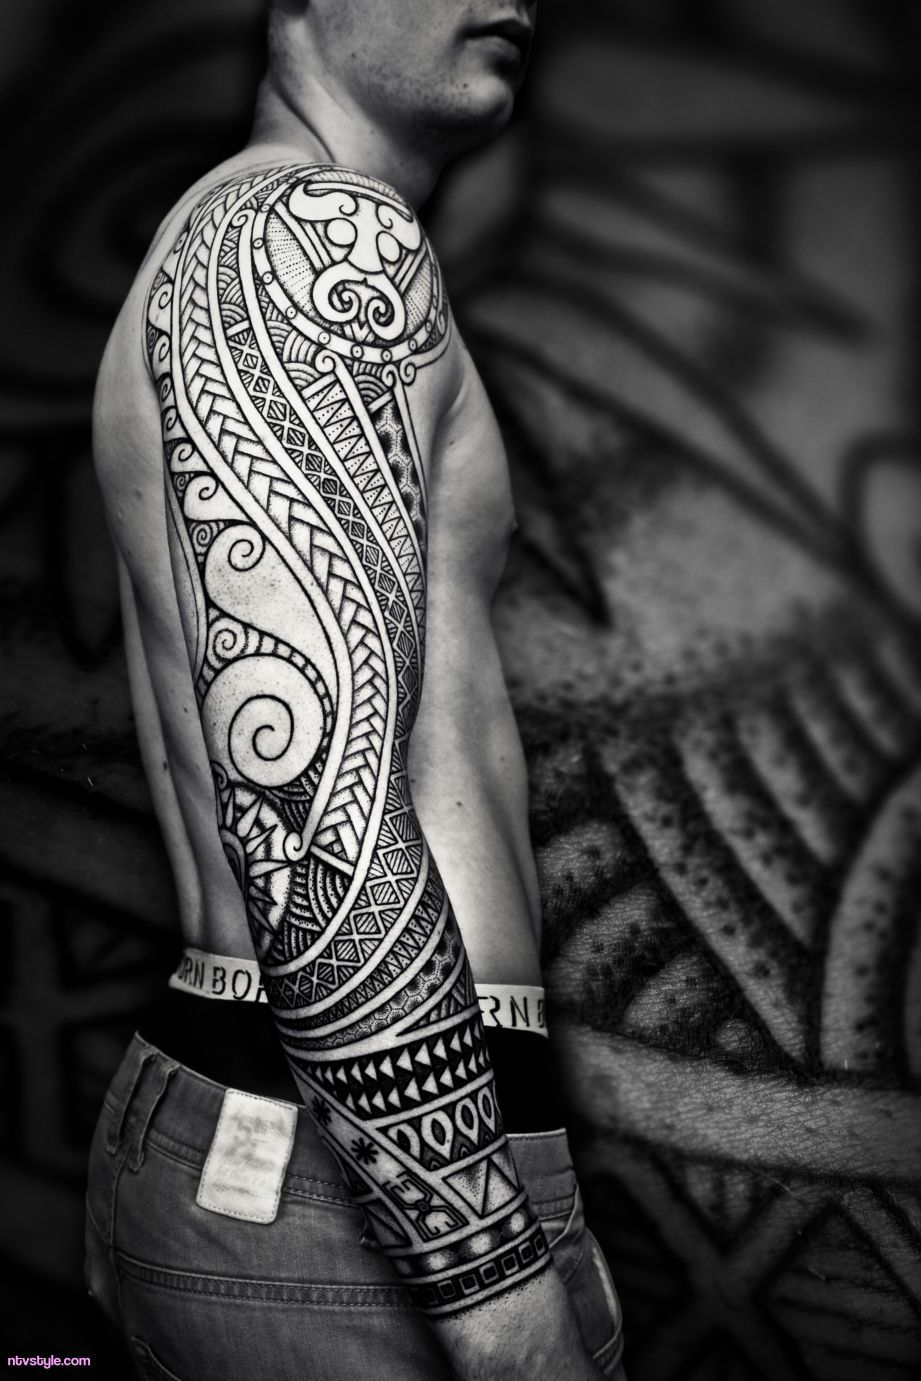 The Titan Sleeve Tattoo  http://www.ntvstyle.com/the-titan-sleeve-tattoo/ NTV Style